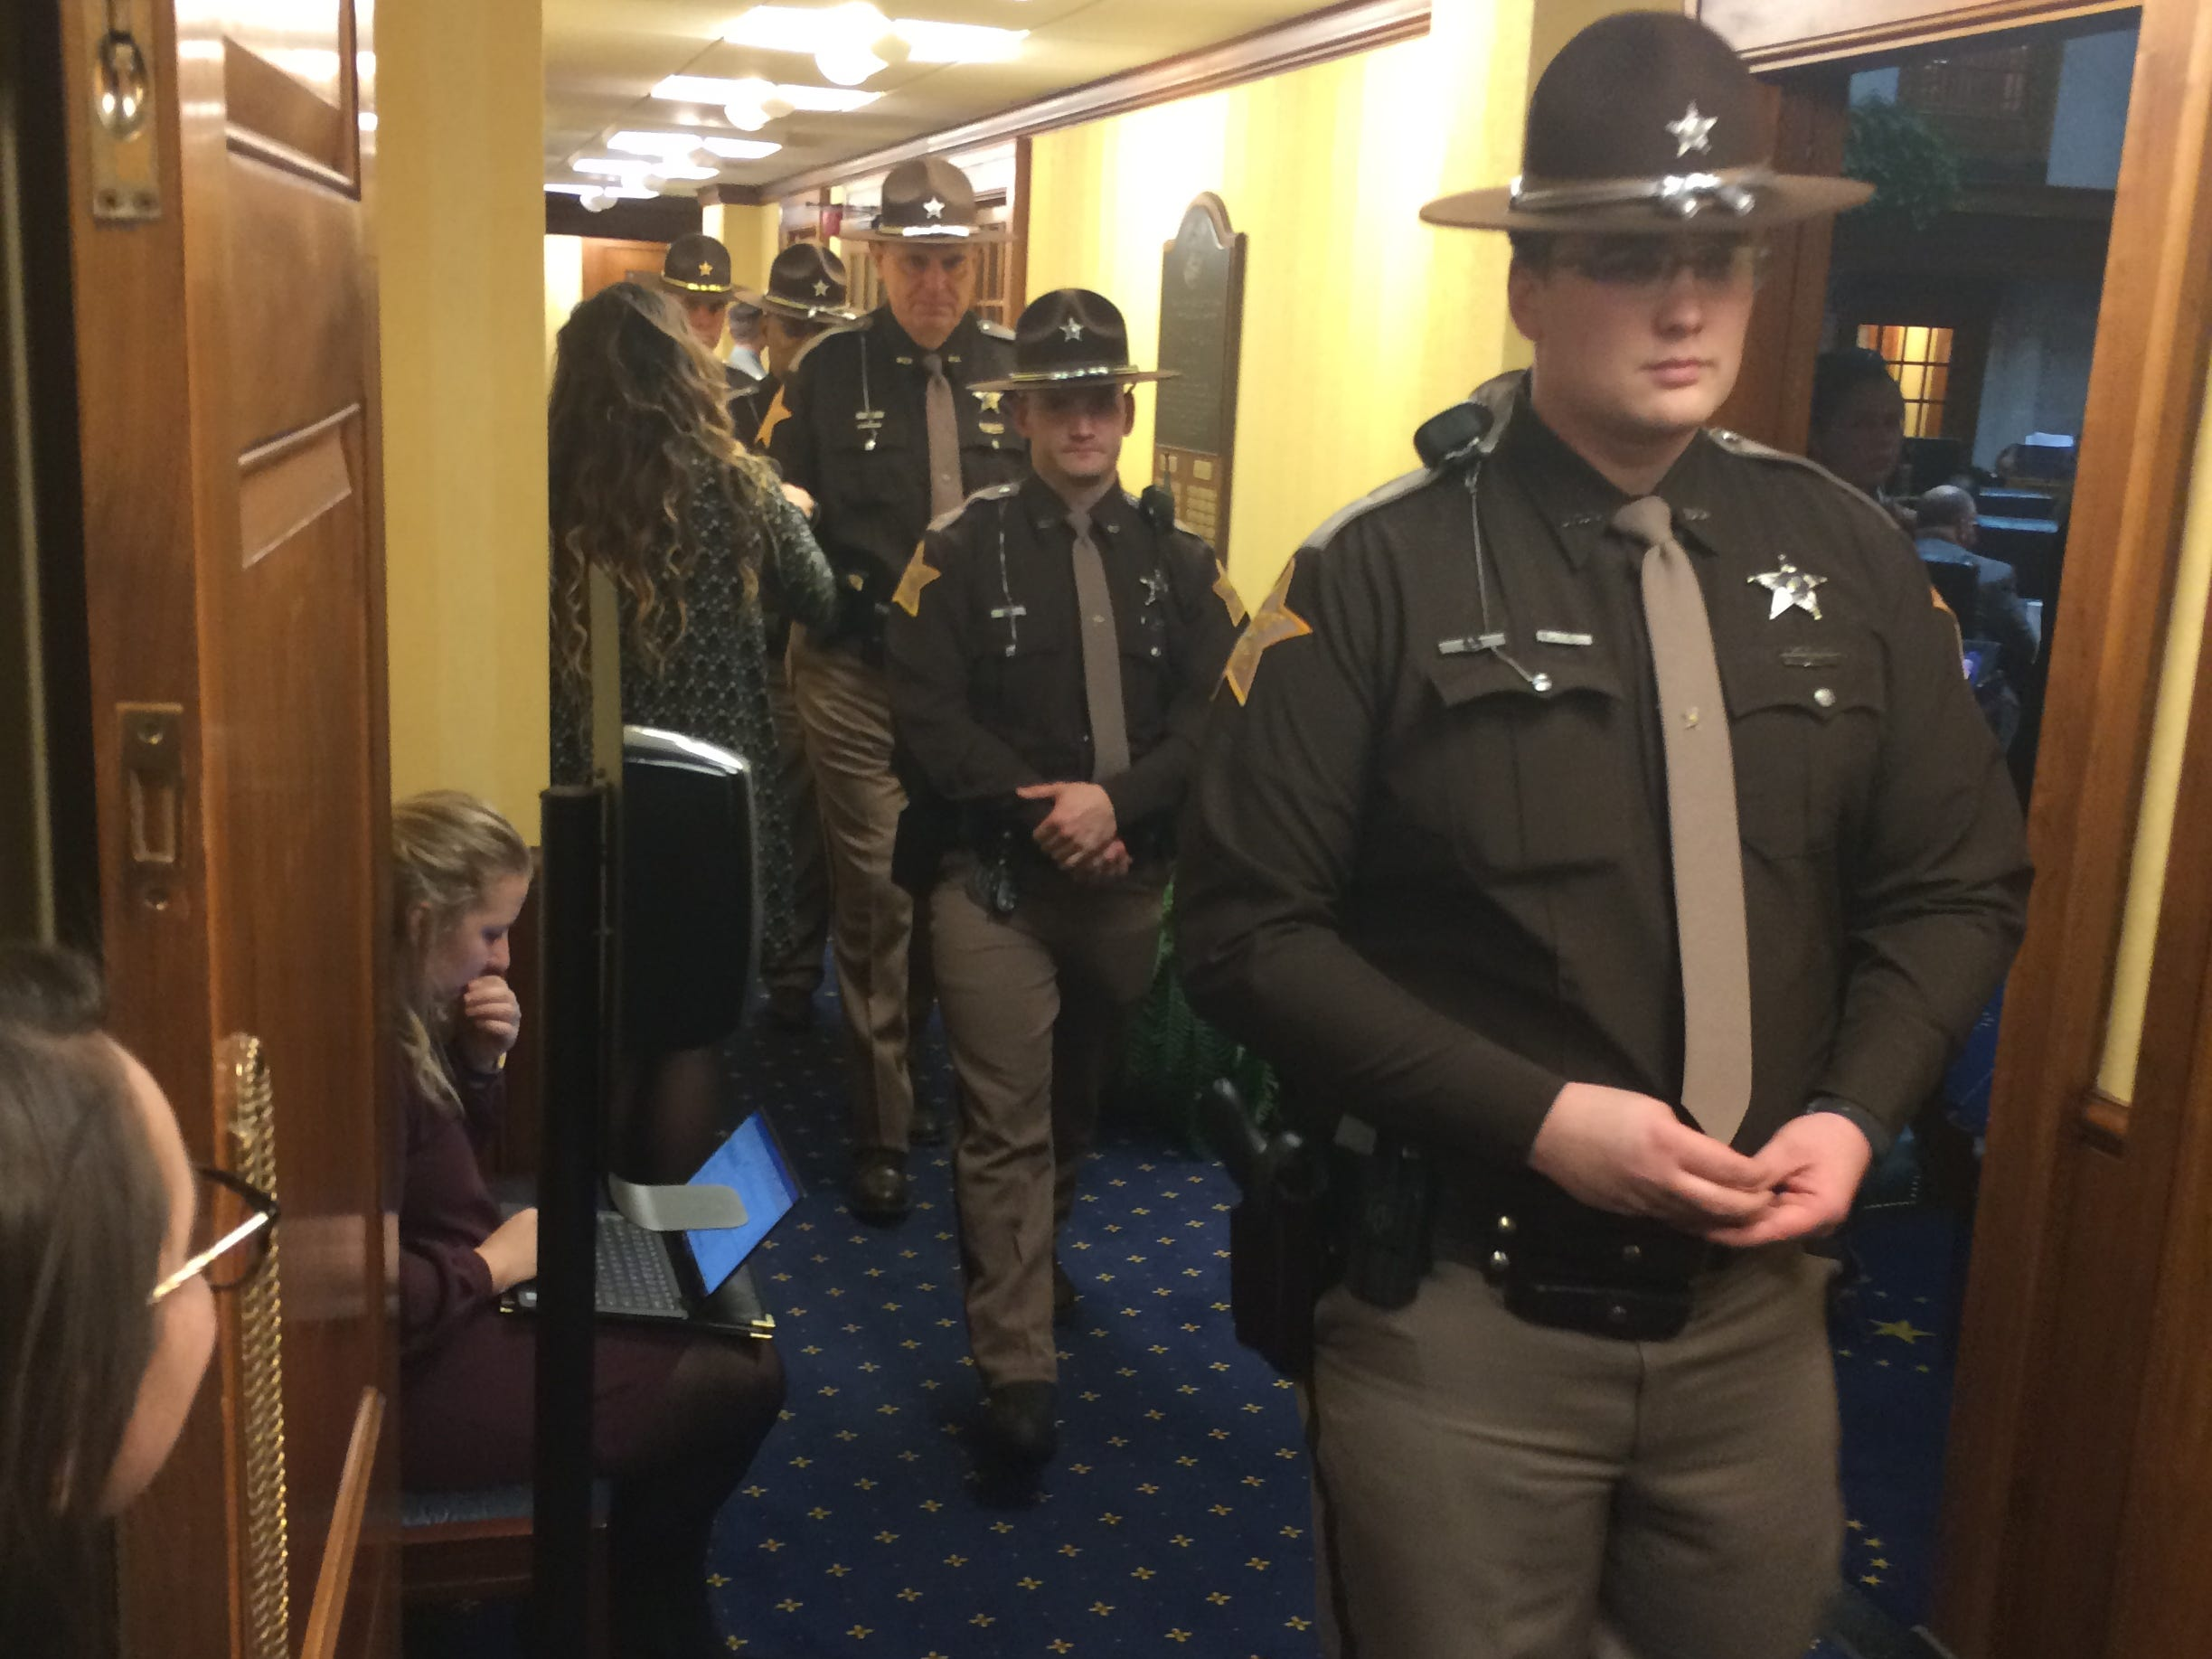 Law enforcement officers receive lapel pins in the shape of the state of Indiana as they leave the Senate chambers Tuesday.